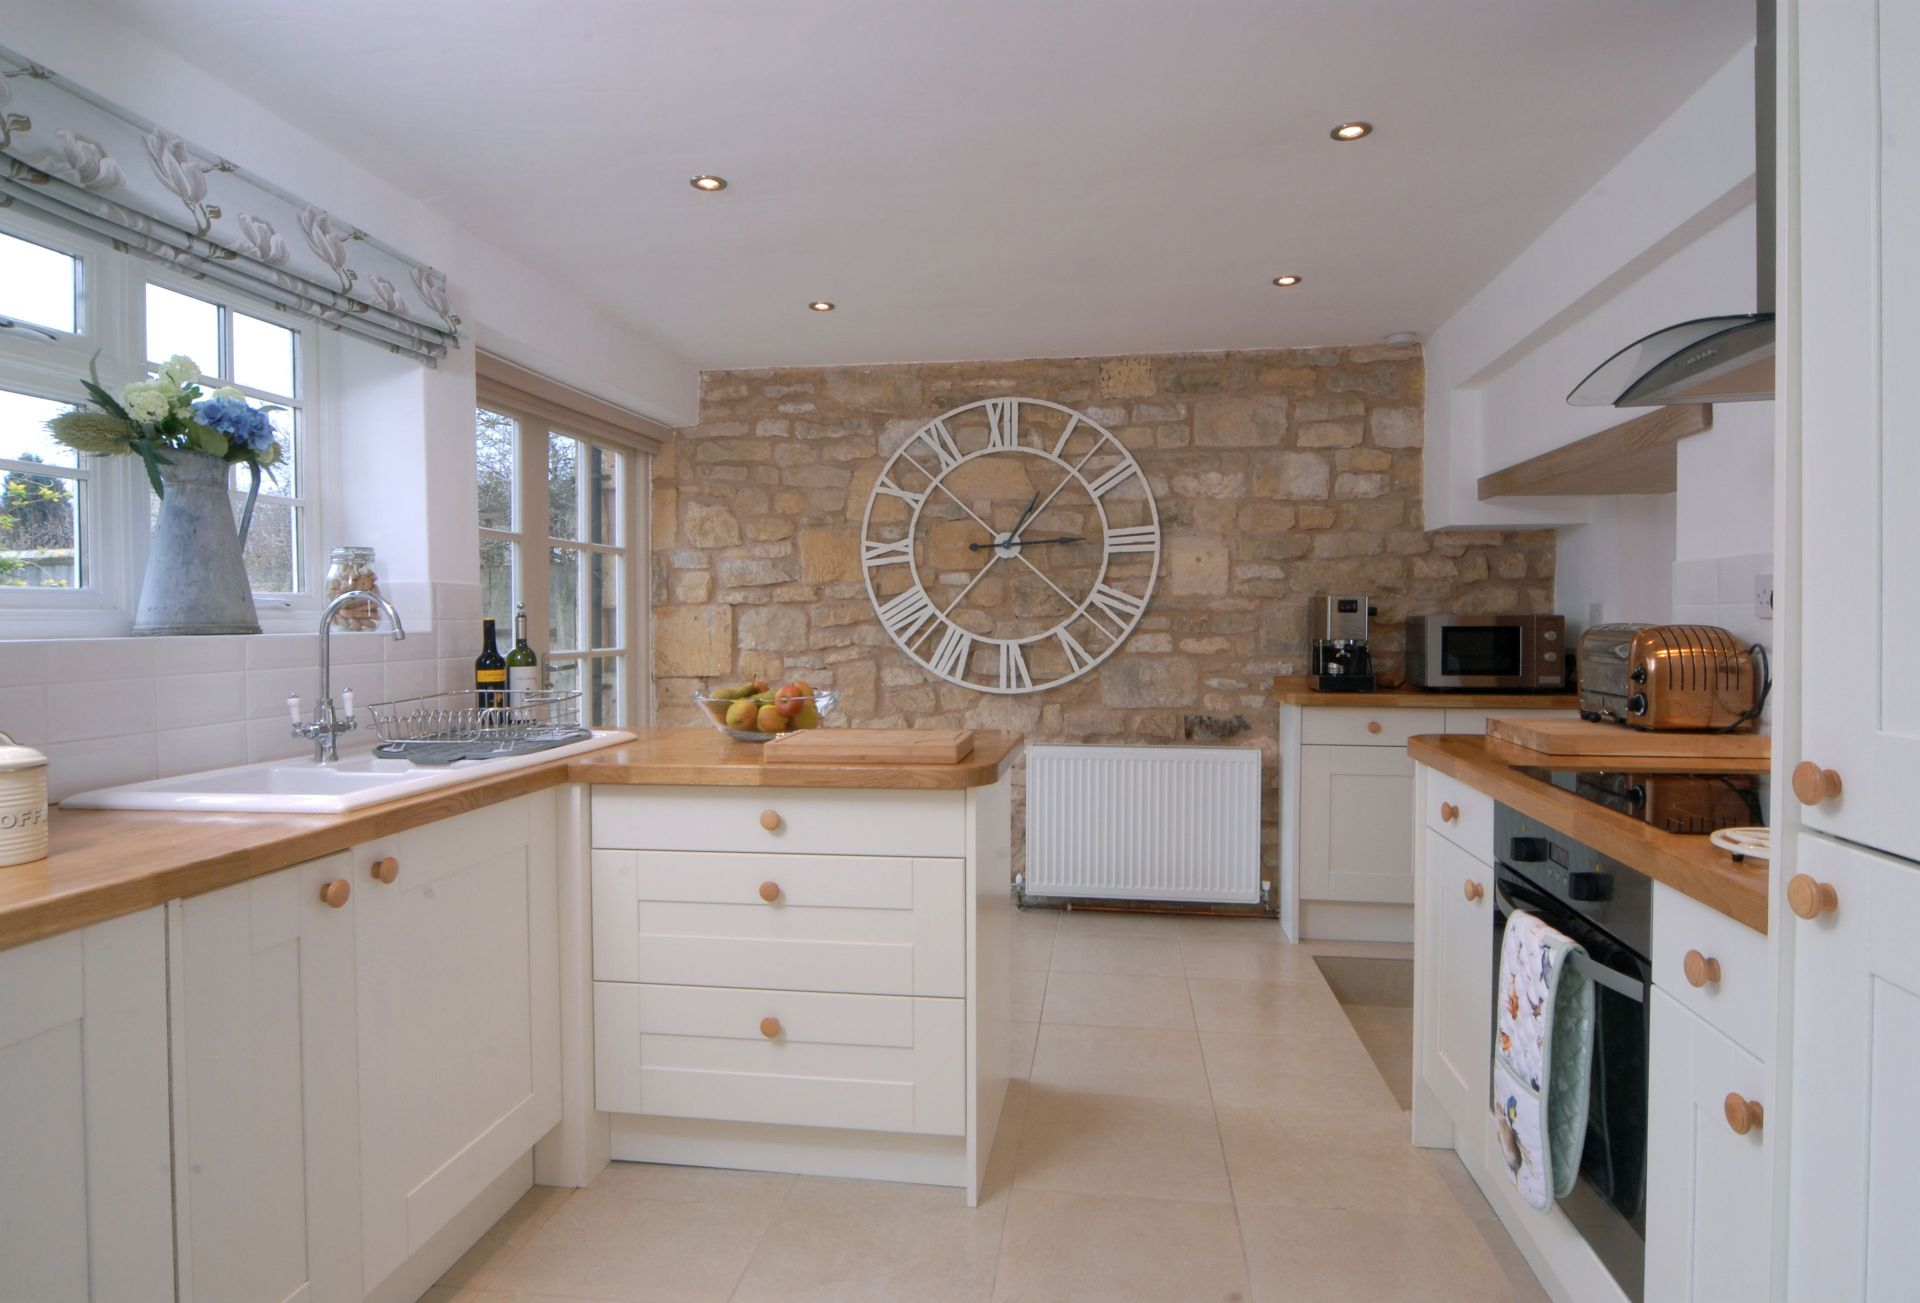 An exposed stone wall adds character to the Kitchen